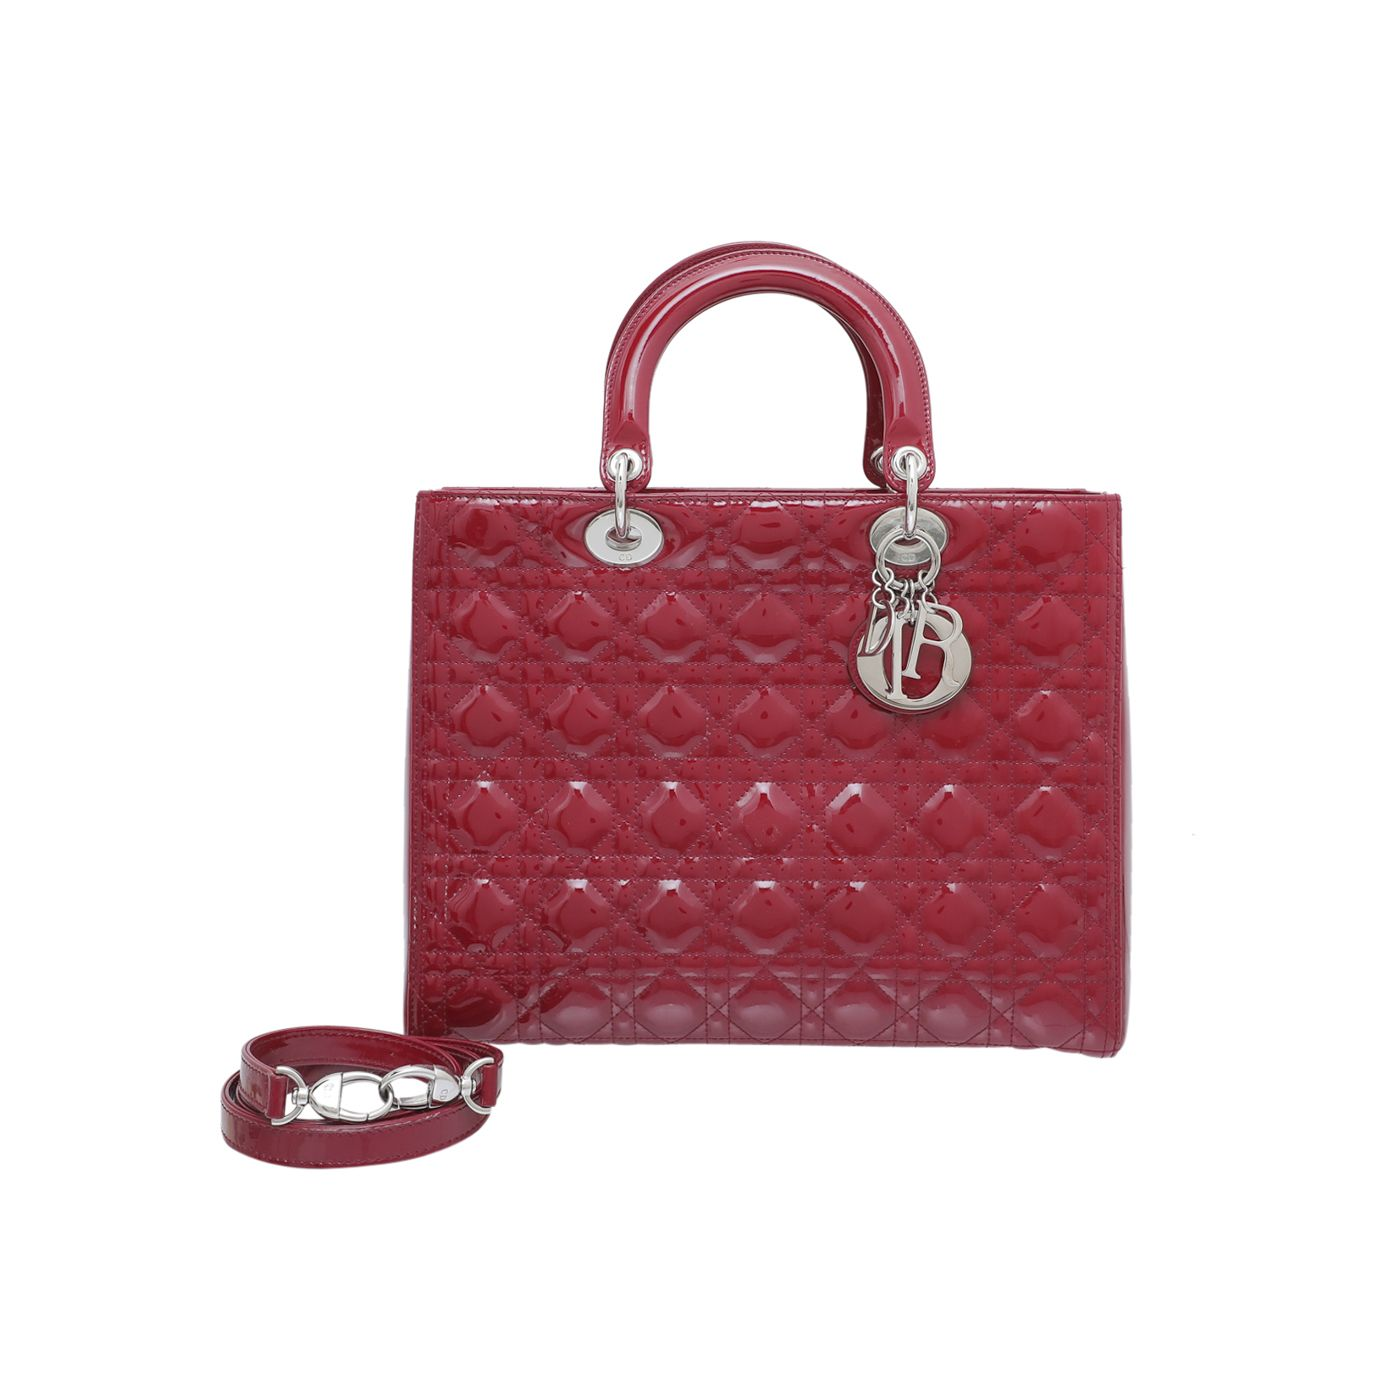 Christian Dior Red Lady Dior Large Bag